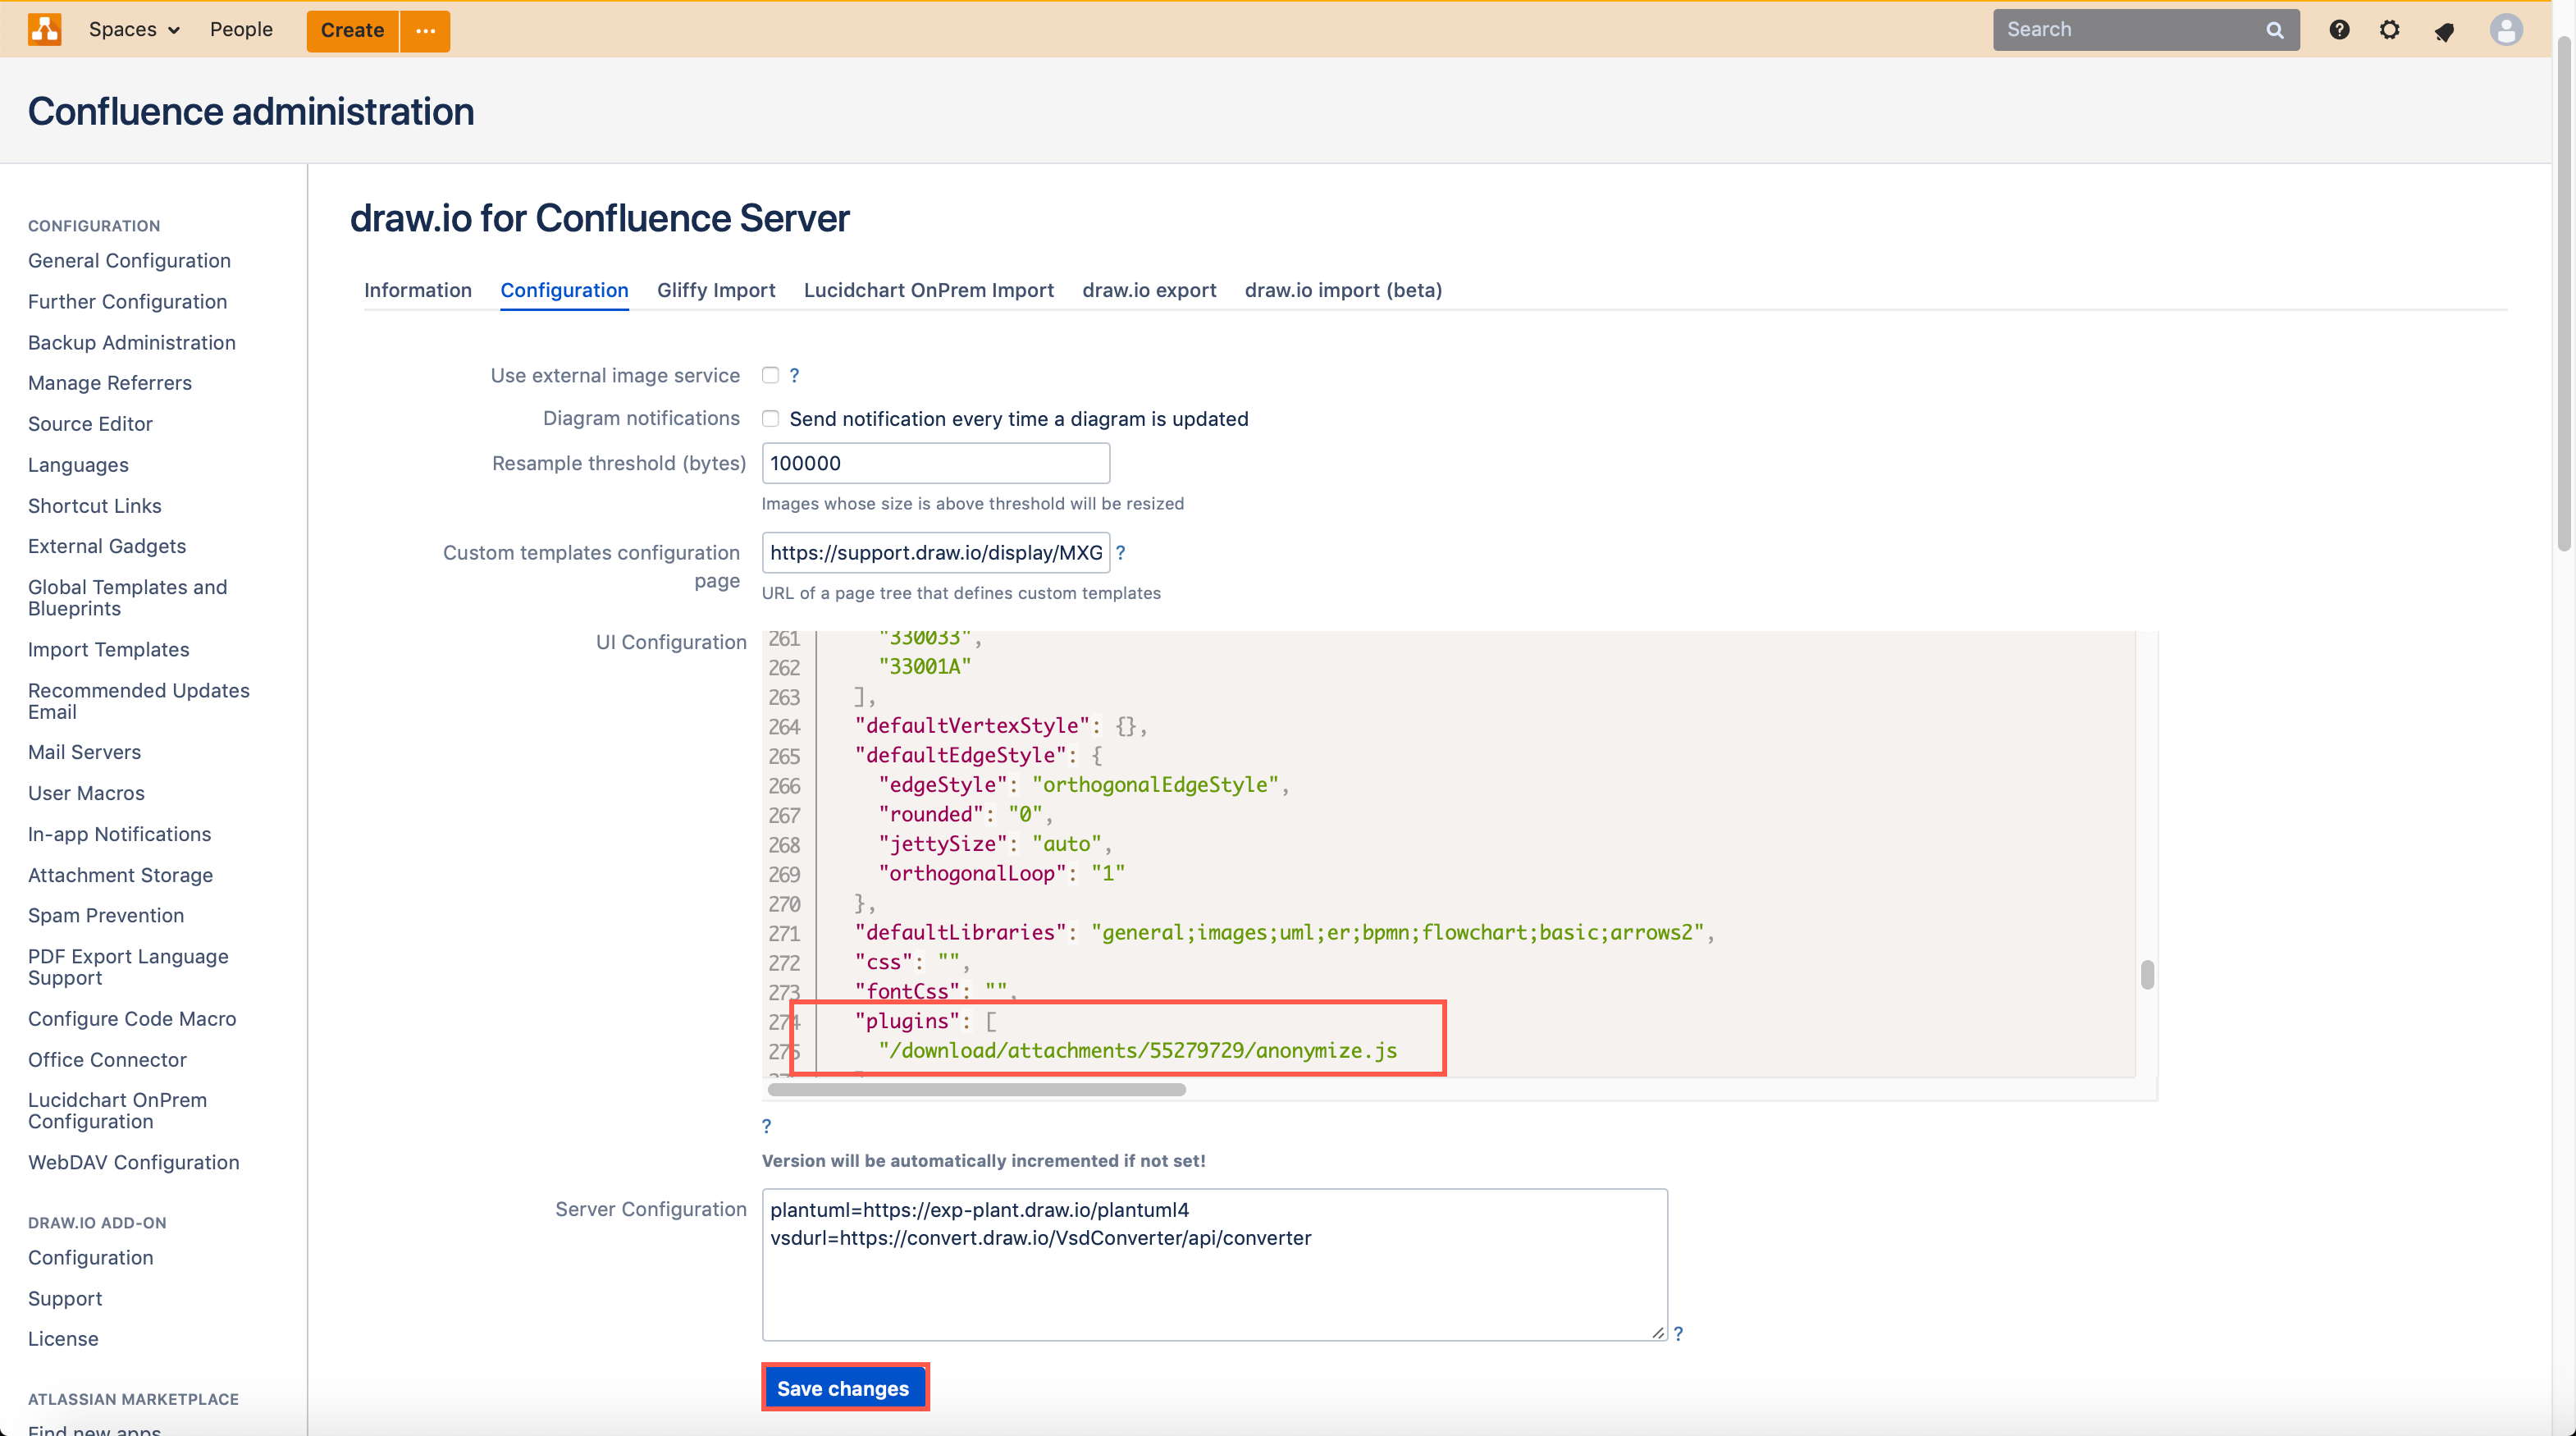 Add the anonymize plugin to draw.io in Confluence Cloud